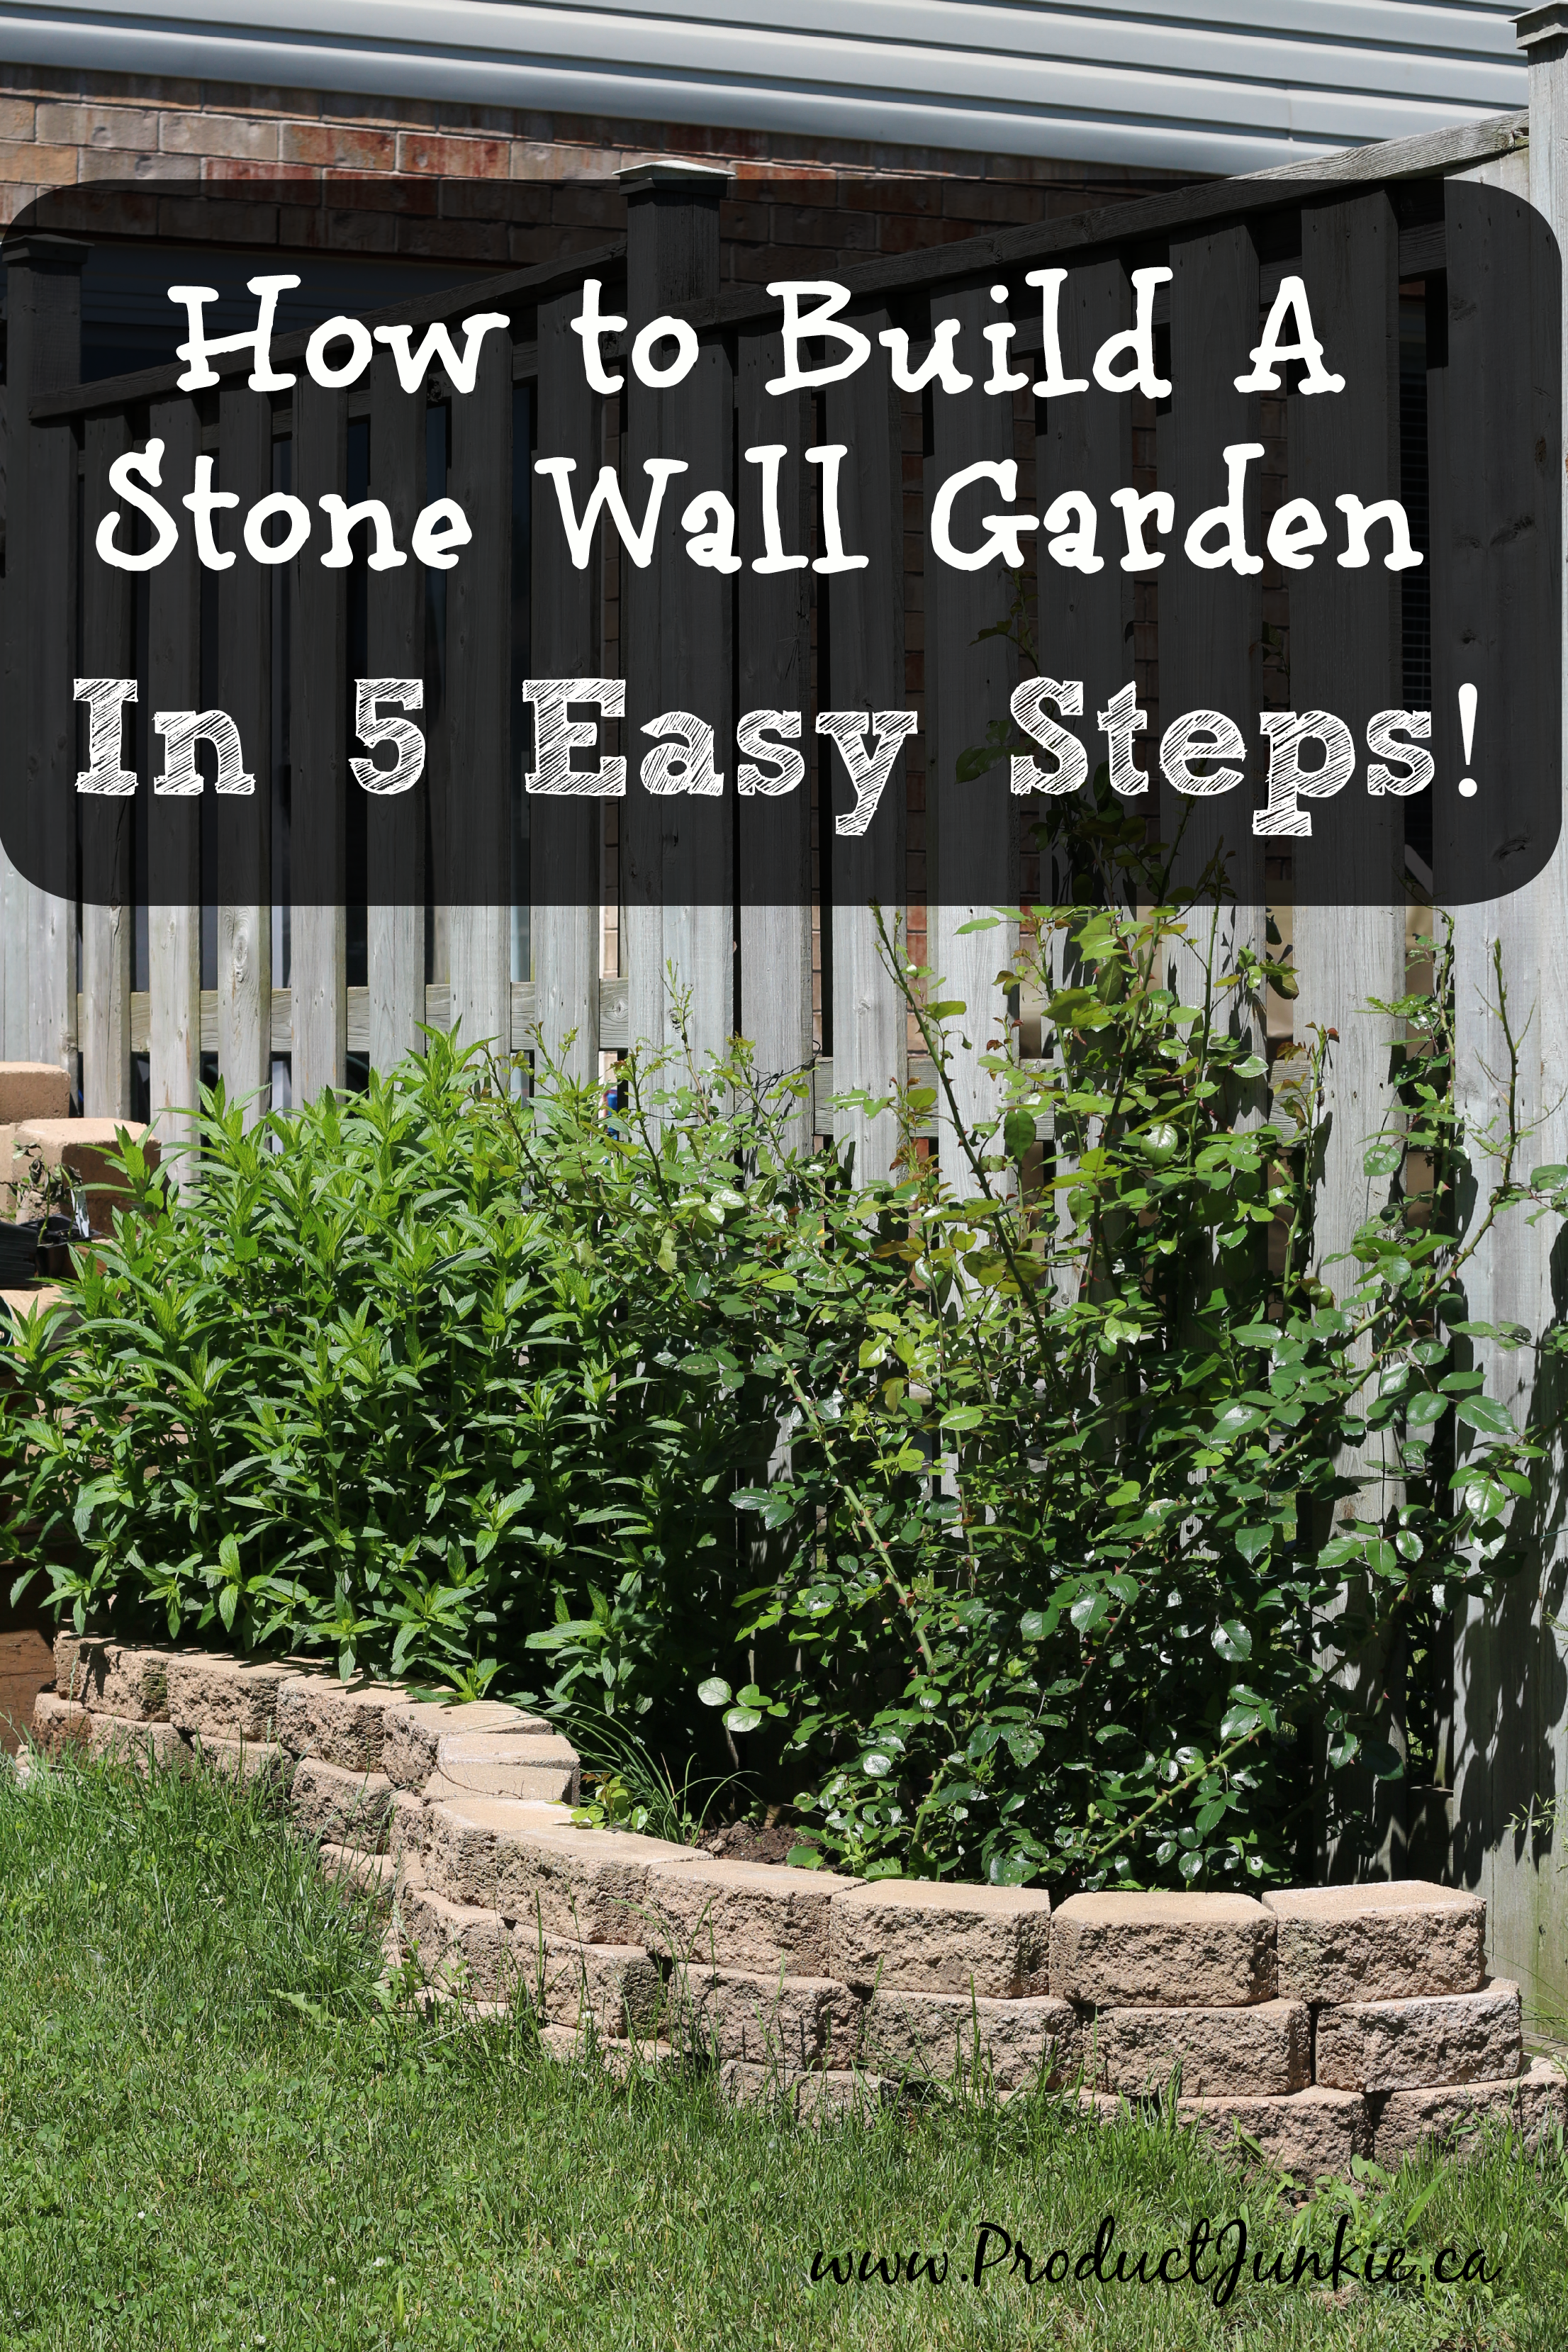 How to Build a Stone Wall Garden in 5 Easy Steps